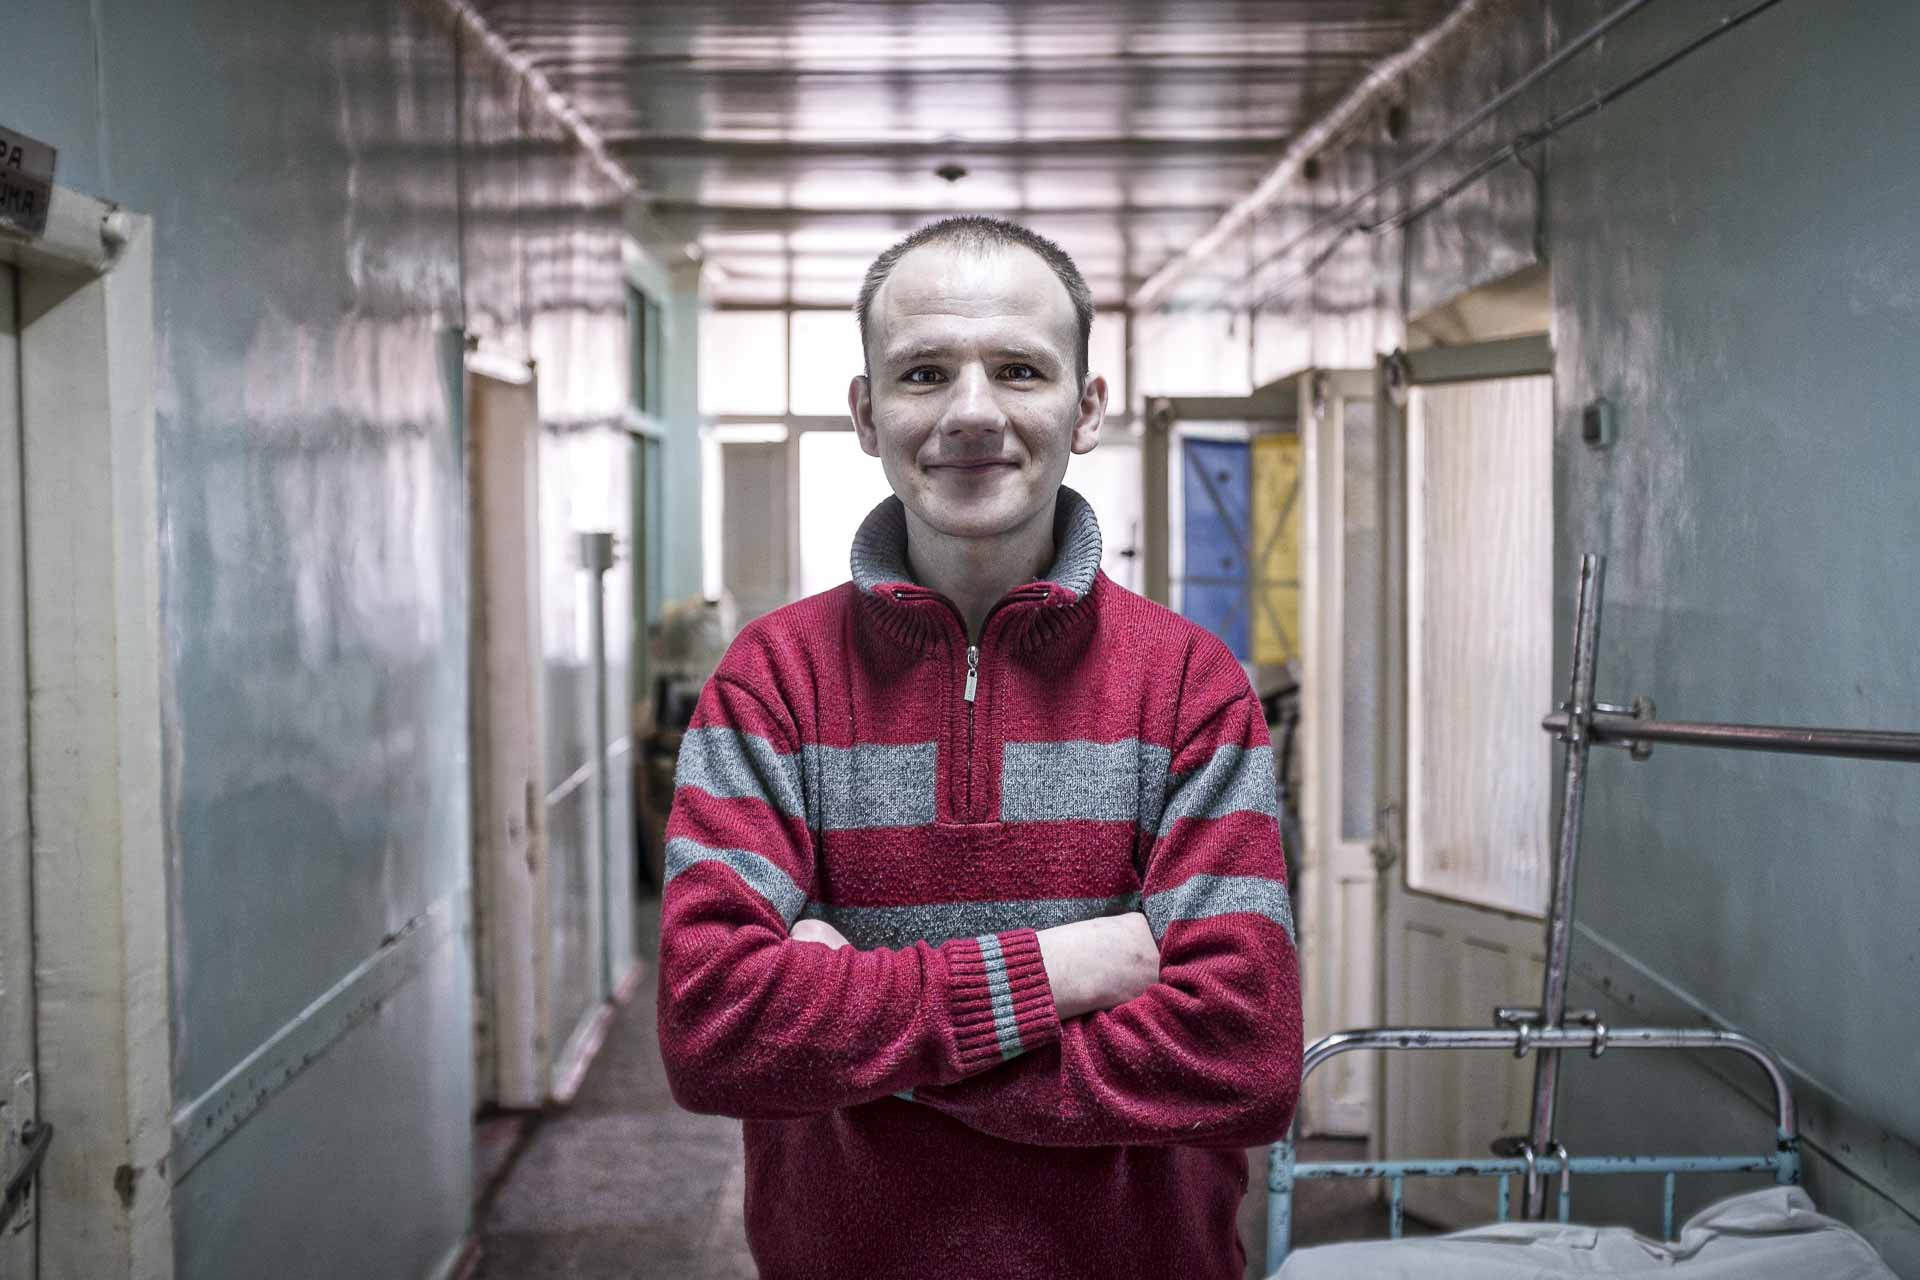 Andrey, volunteer, 29, helps wounded soldiers at the hospital. He has a gentle smile that may be reflects is belonging to the Hram Slavy Hospoda Evangelist. Bakhmout - UKRAINE